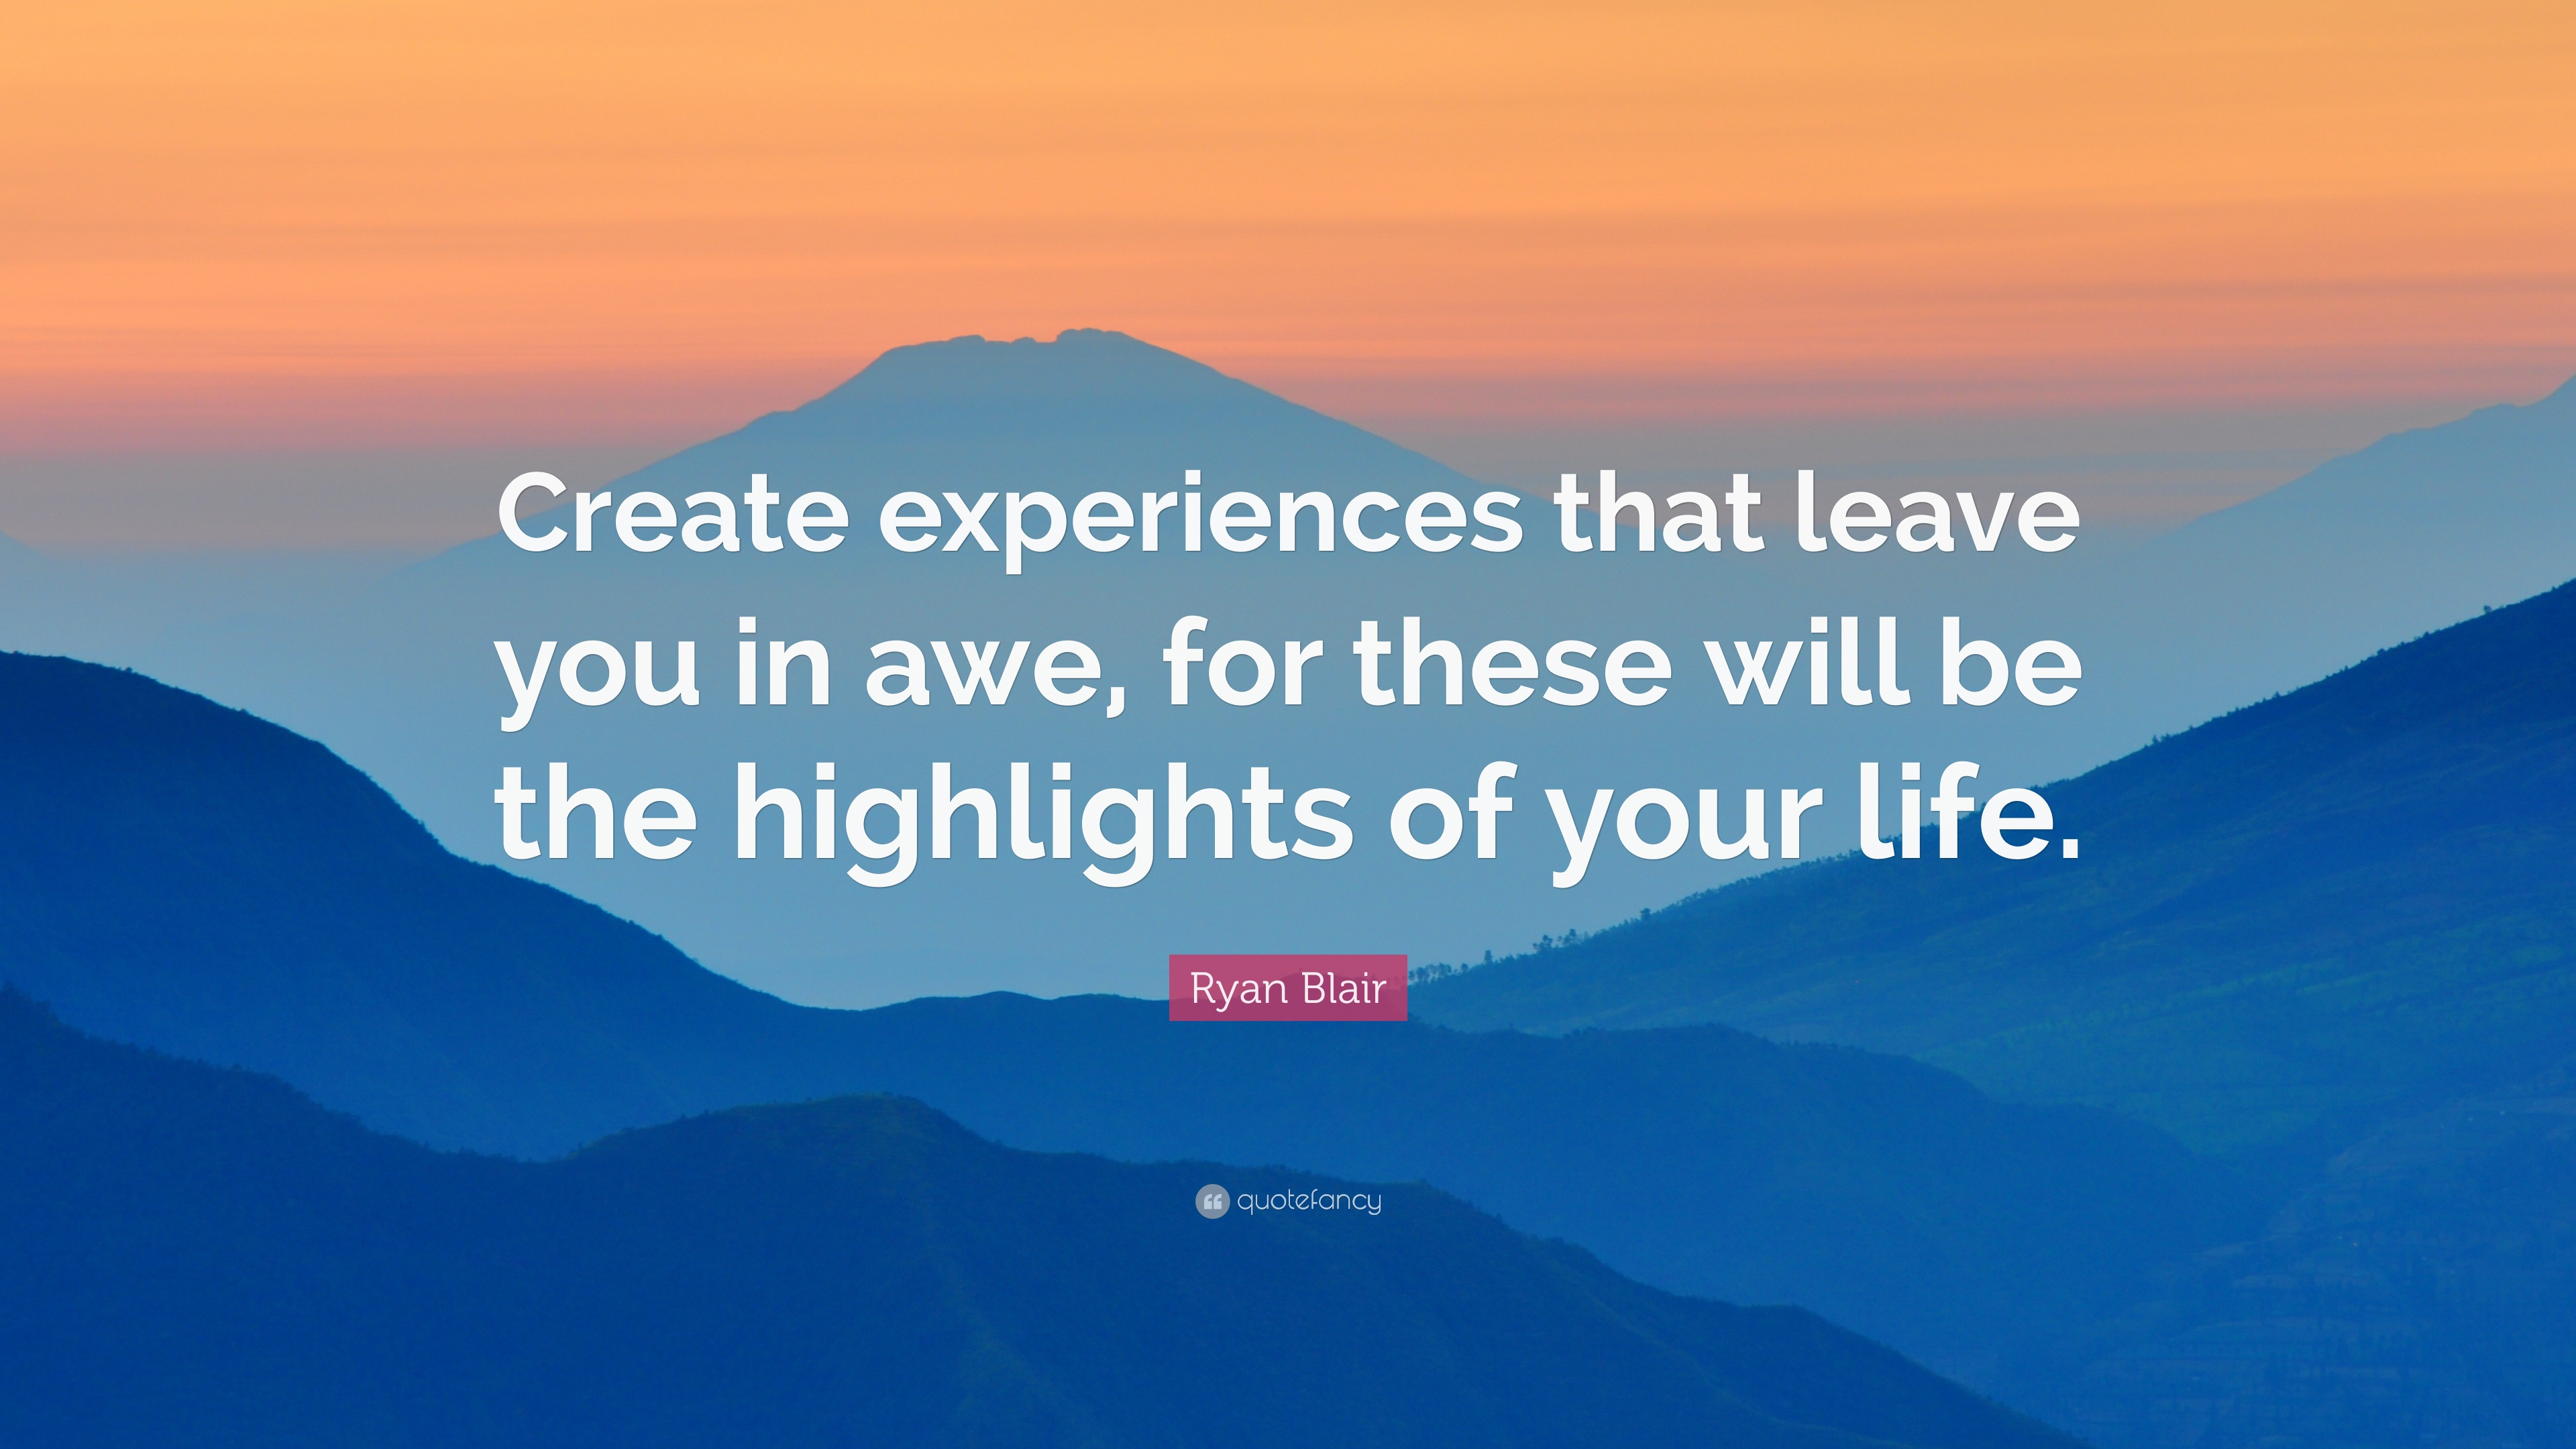 In Owe blair quote create experiences that leave you in awe for